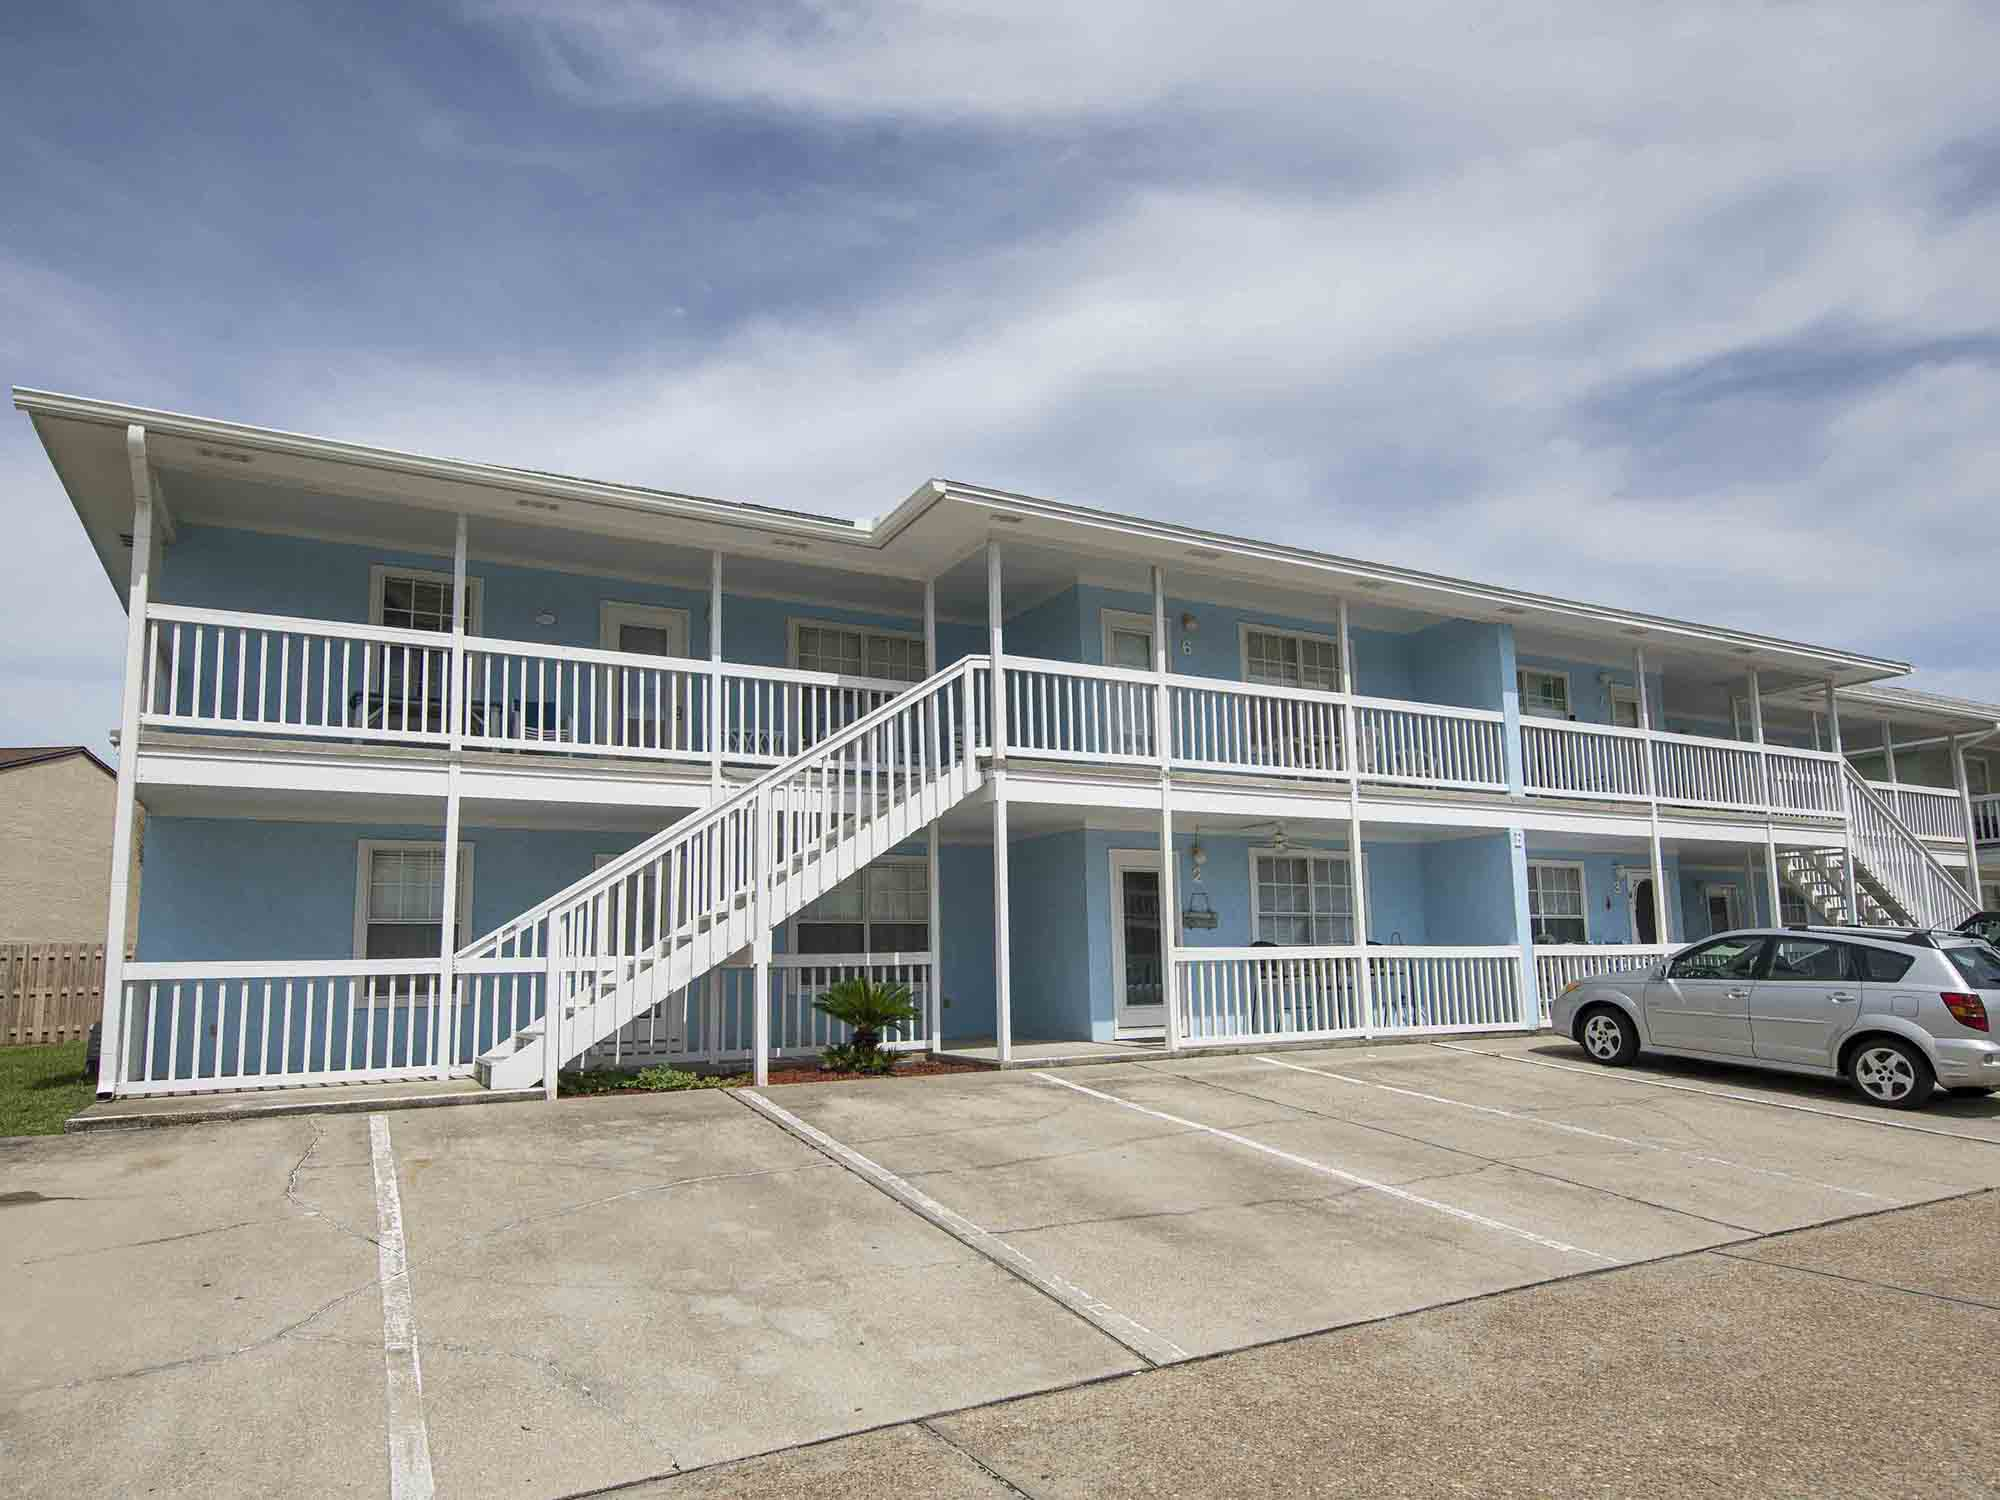 4 bedroom condos panama city beach